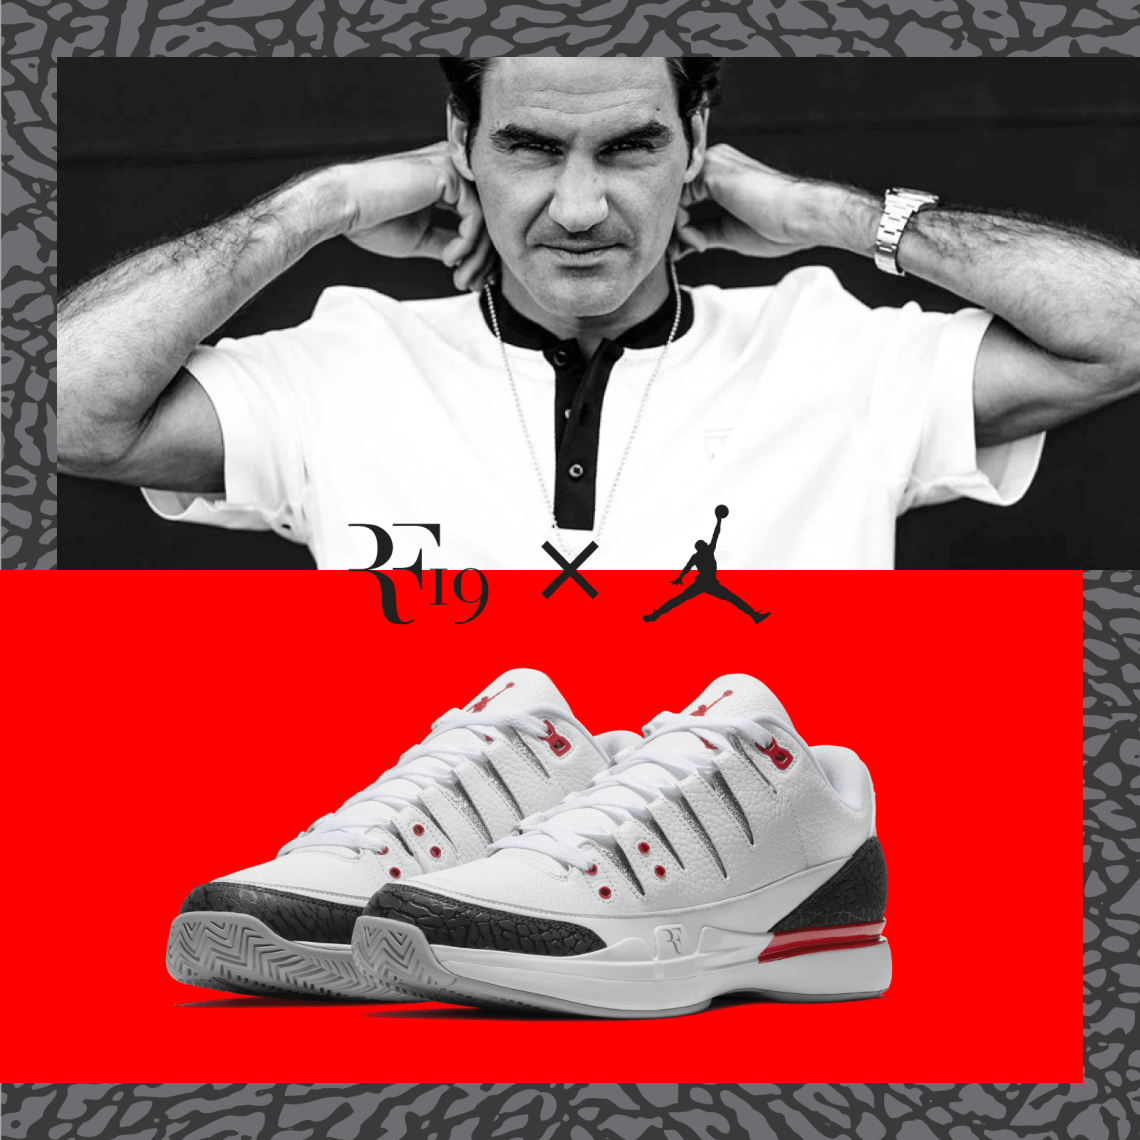 68cd49674d7cf Roger Federer and Nike Debut Zoom Vapor Air Jordan 3